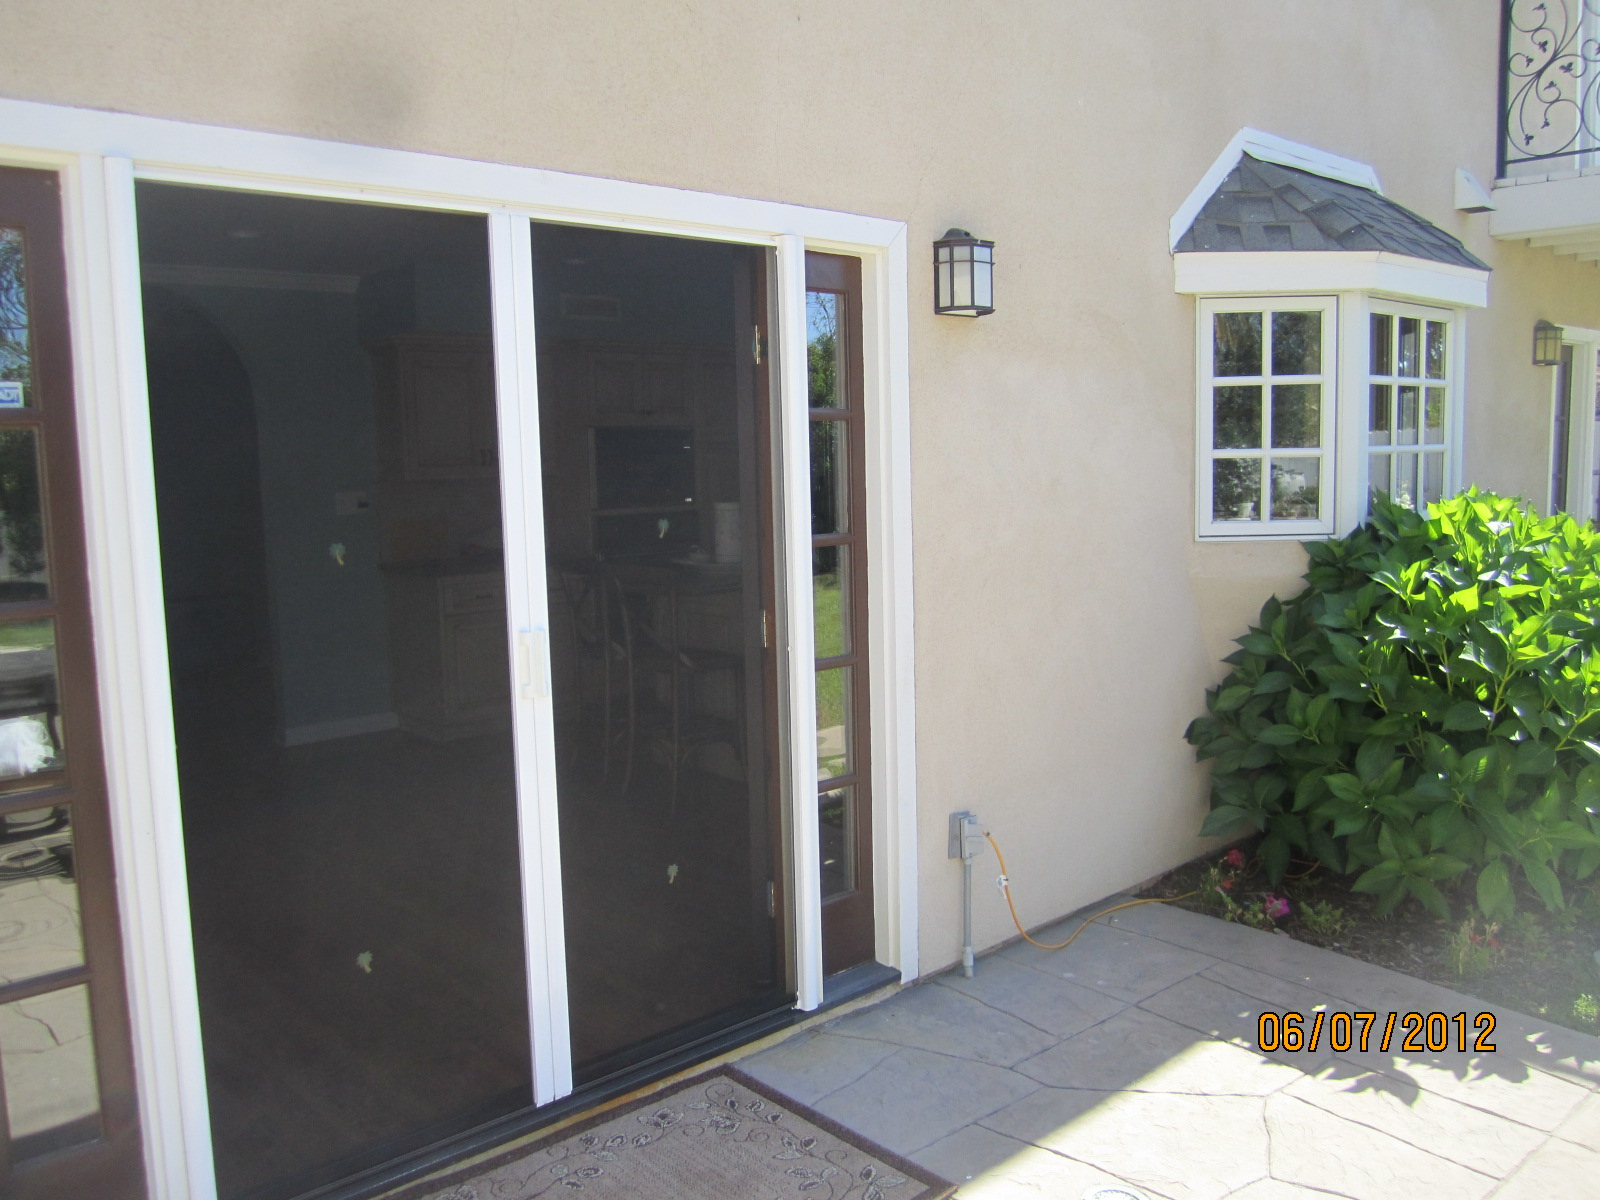 Exterior View French Doors of Retractable Screen